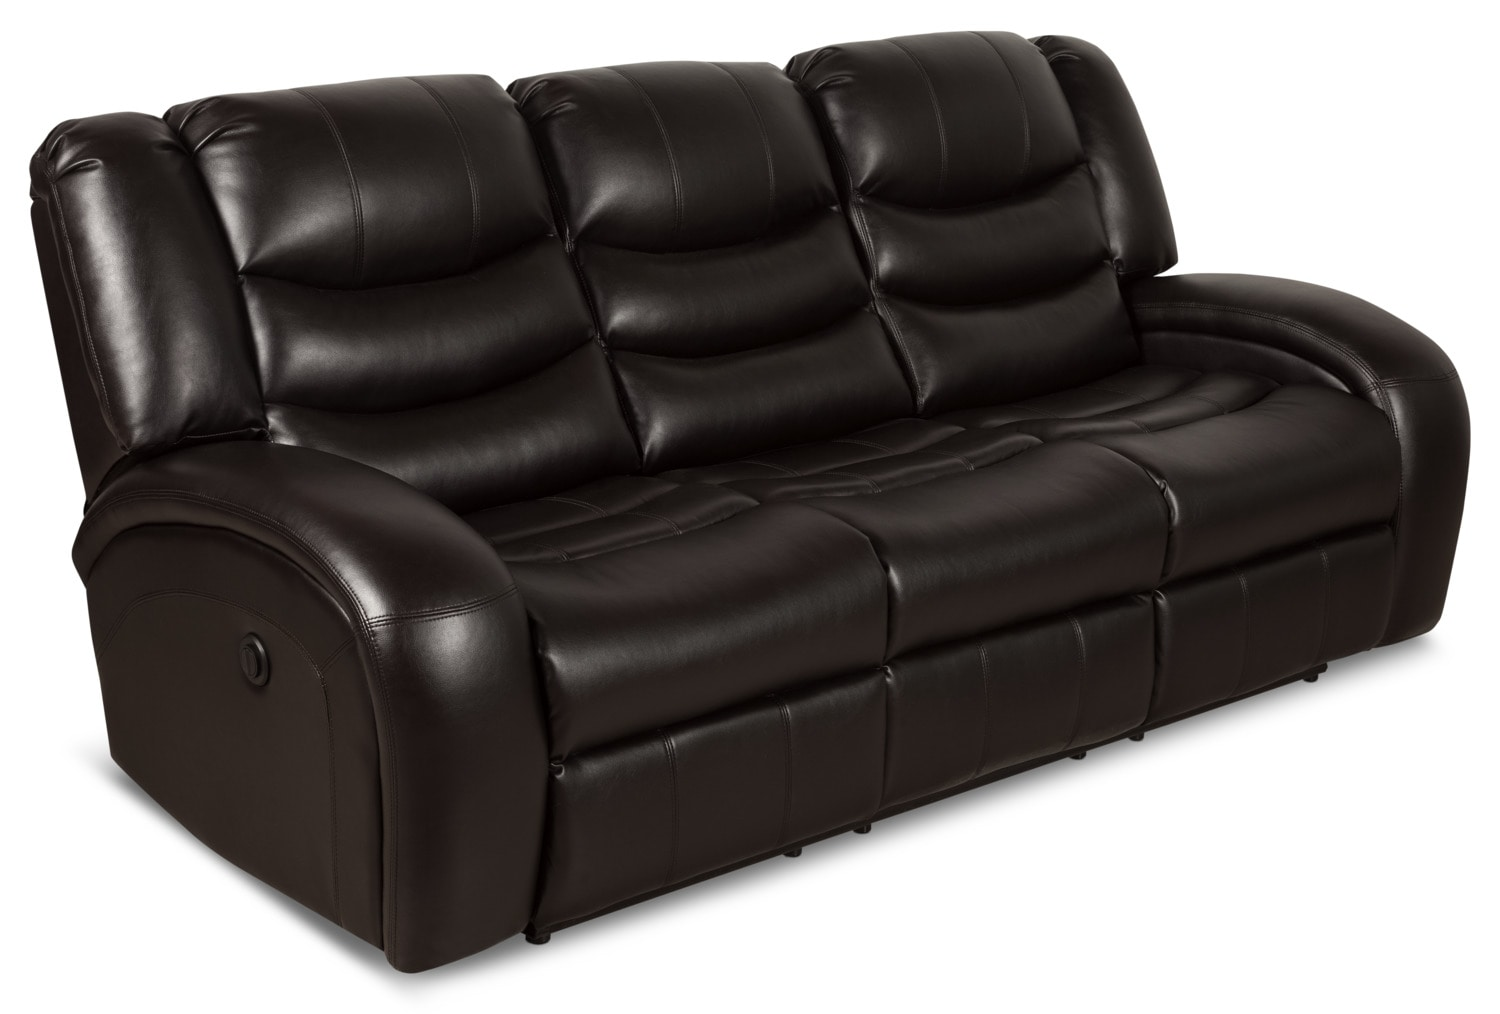 angus bonded leather reclining sofa sofas showroom in bangalore look fabric power  dark